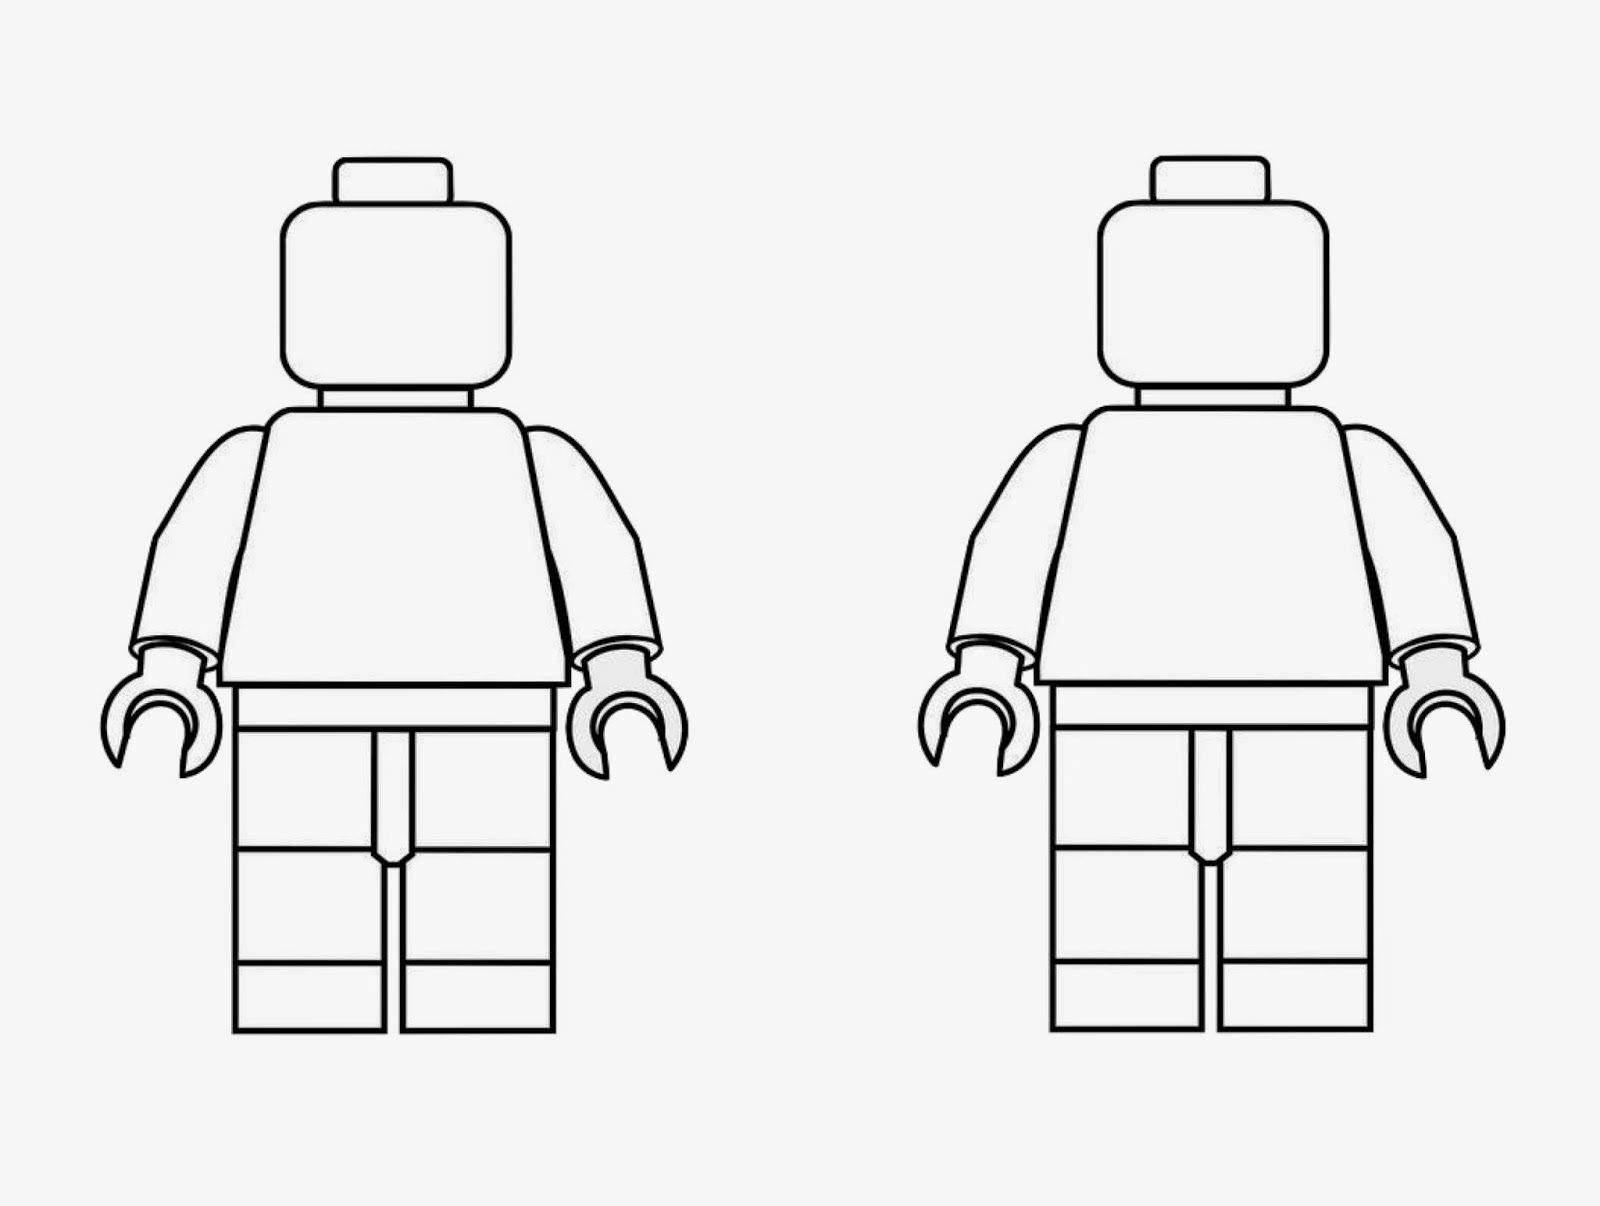 Free Printable Iron Man Coloring Pages For Kids |Lego Man Coloring Page